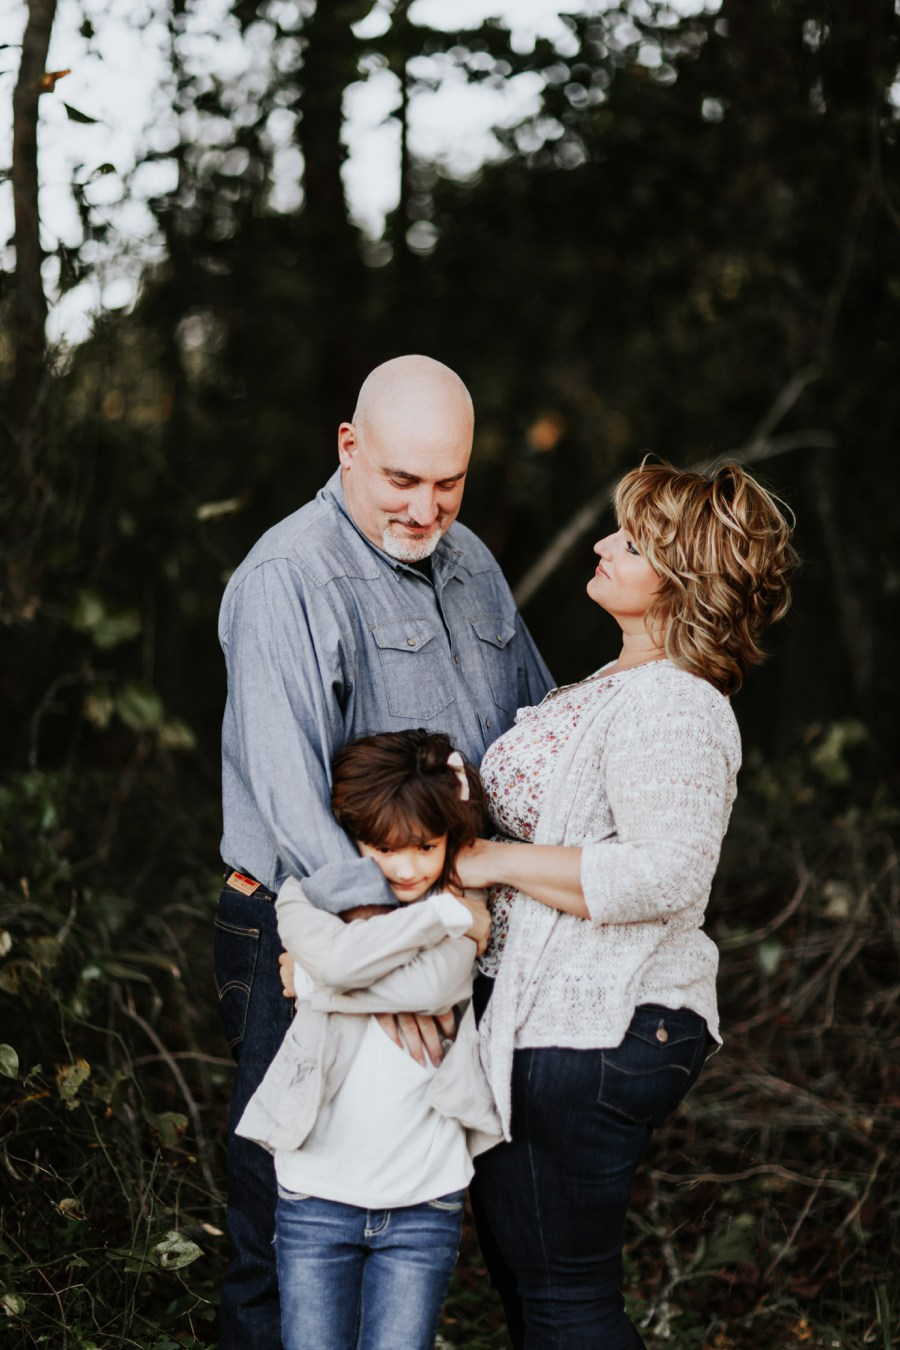 lifestyle_family_photographer_north_carolina_weaver_family_kandis_marino_photography_0016.jpg